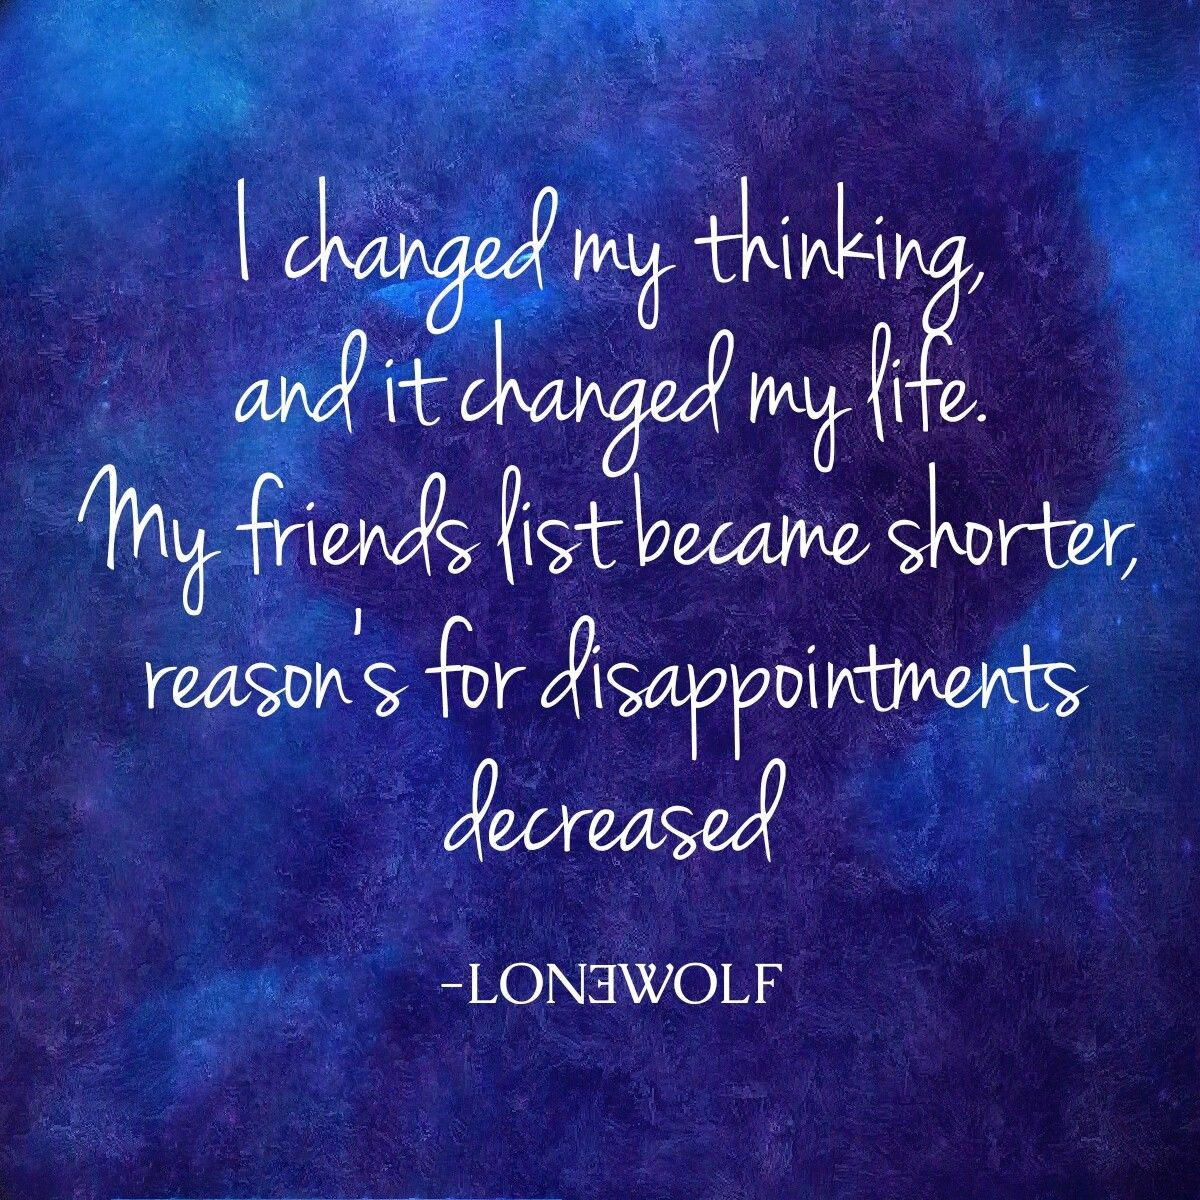 Lonǝwolf Life Quote Don T Forget To Like Share Support Follow Lon3wolfofficial To Get More Of Quotes I Unspoken Words Friends List Life Quotes